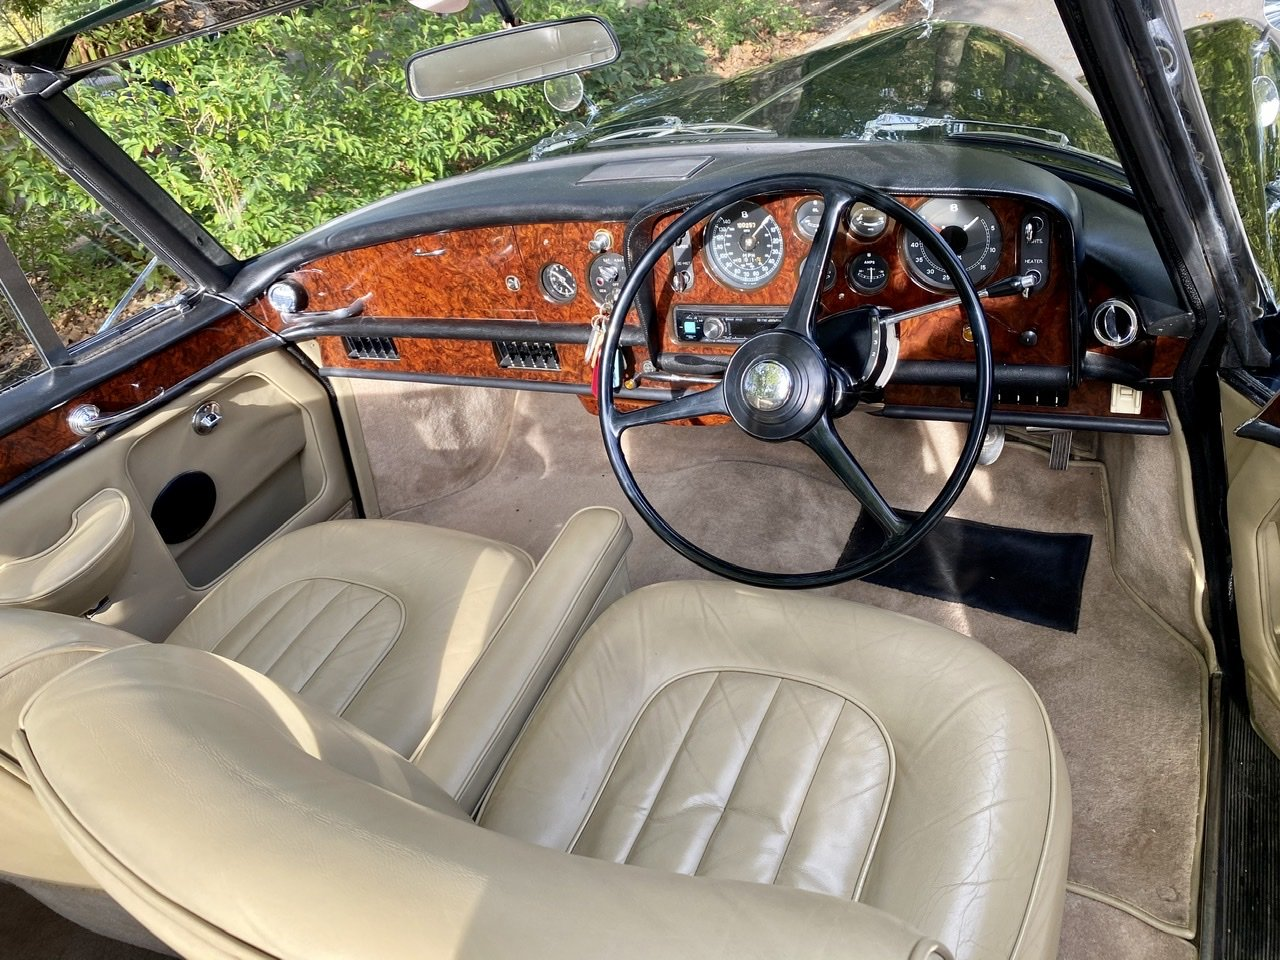 1964 Bentley S3 Continental Drop Head Coupe For Sale (picture 6 of 24)